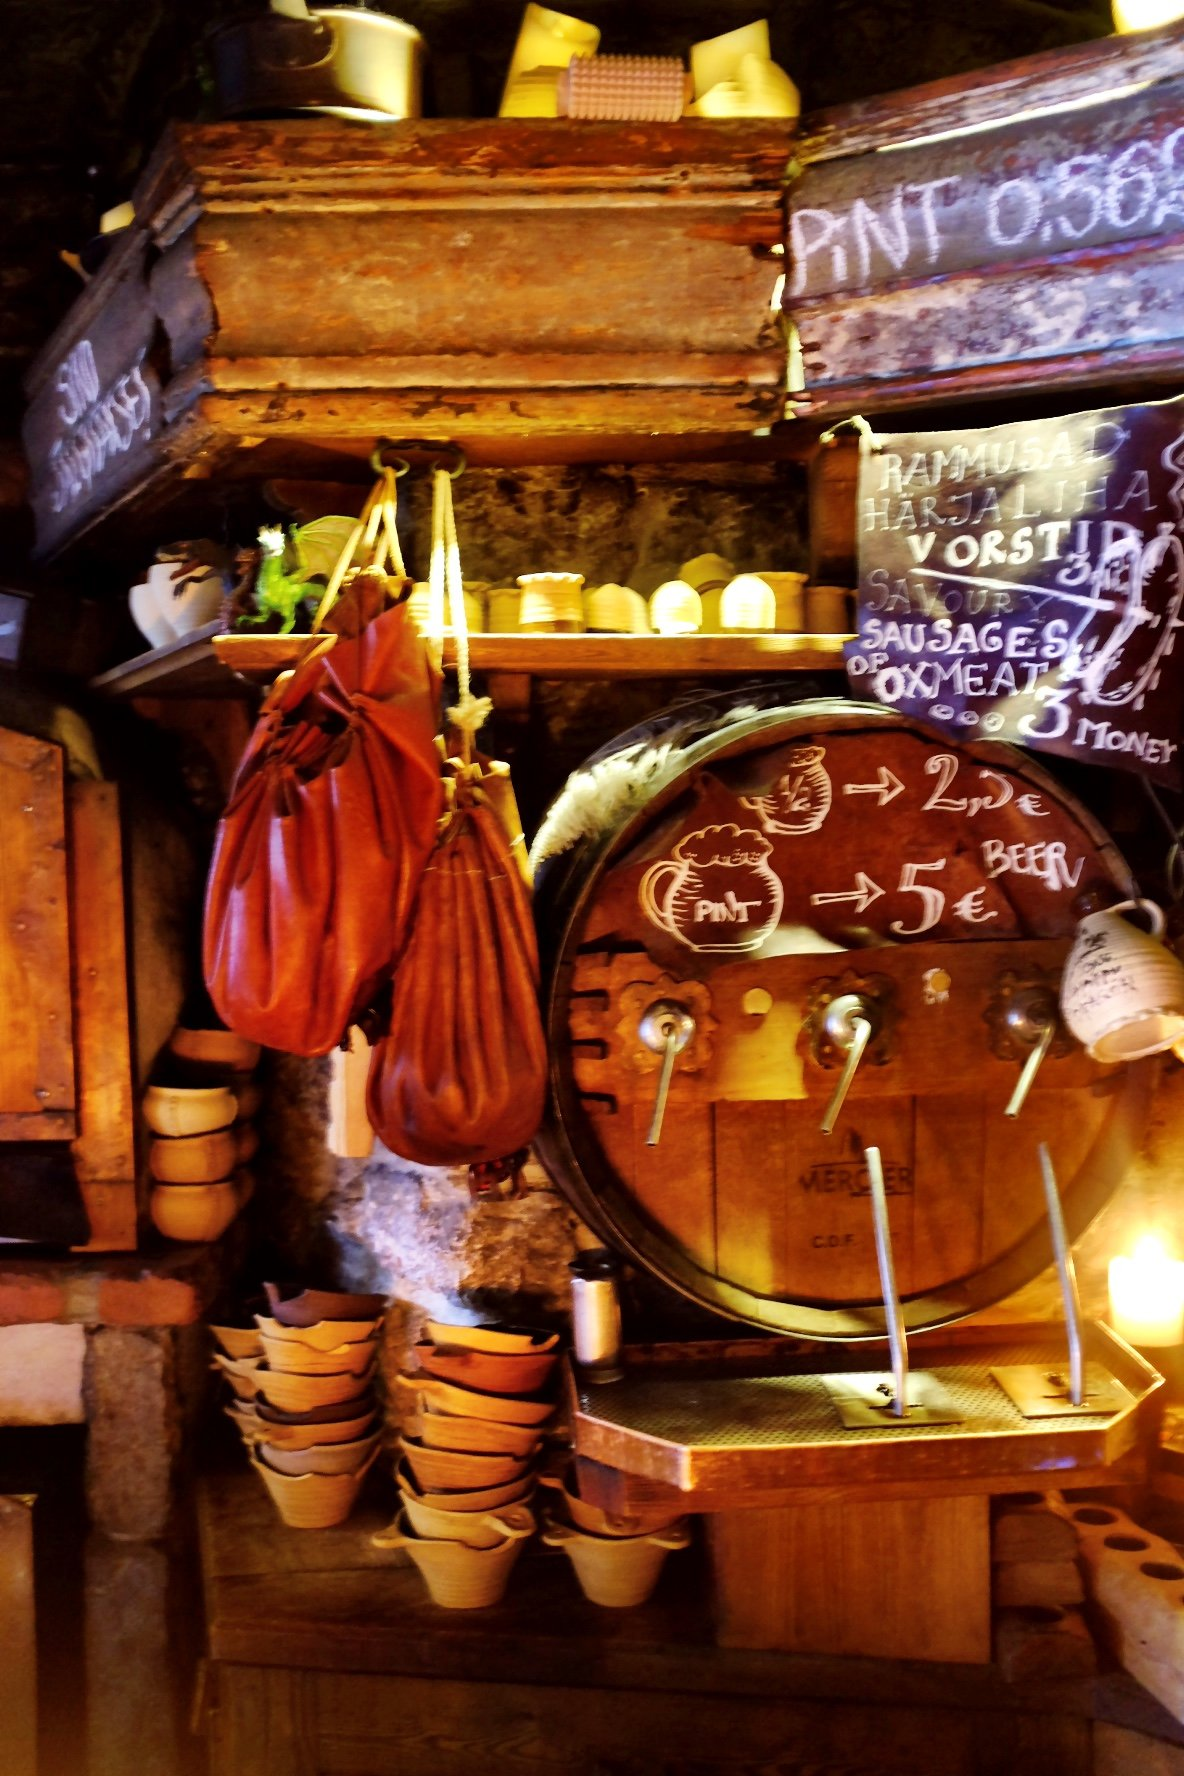 The Draakon interieur with a barrel, some ceramic bowls, some bags and the menu written all over the place. Situated in Tallinn